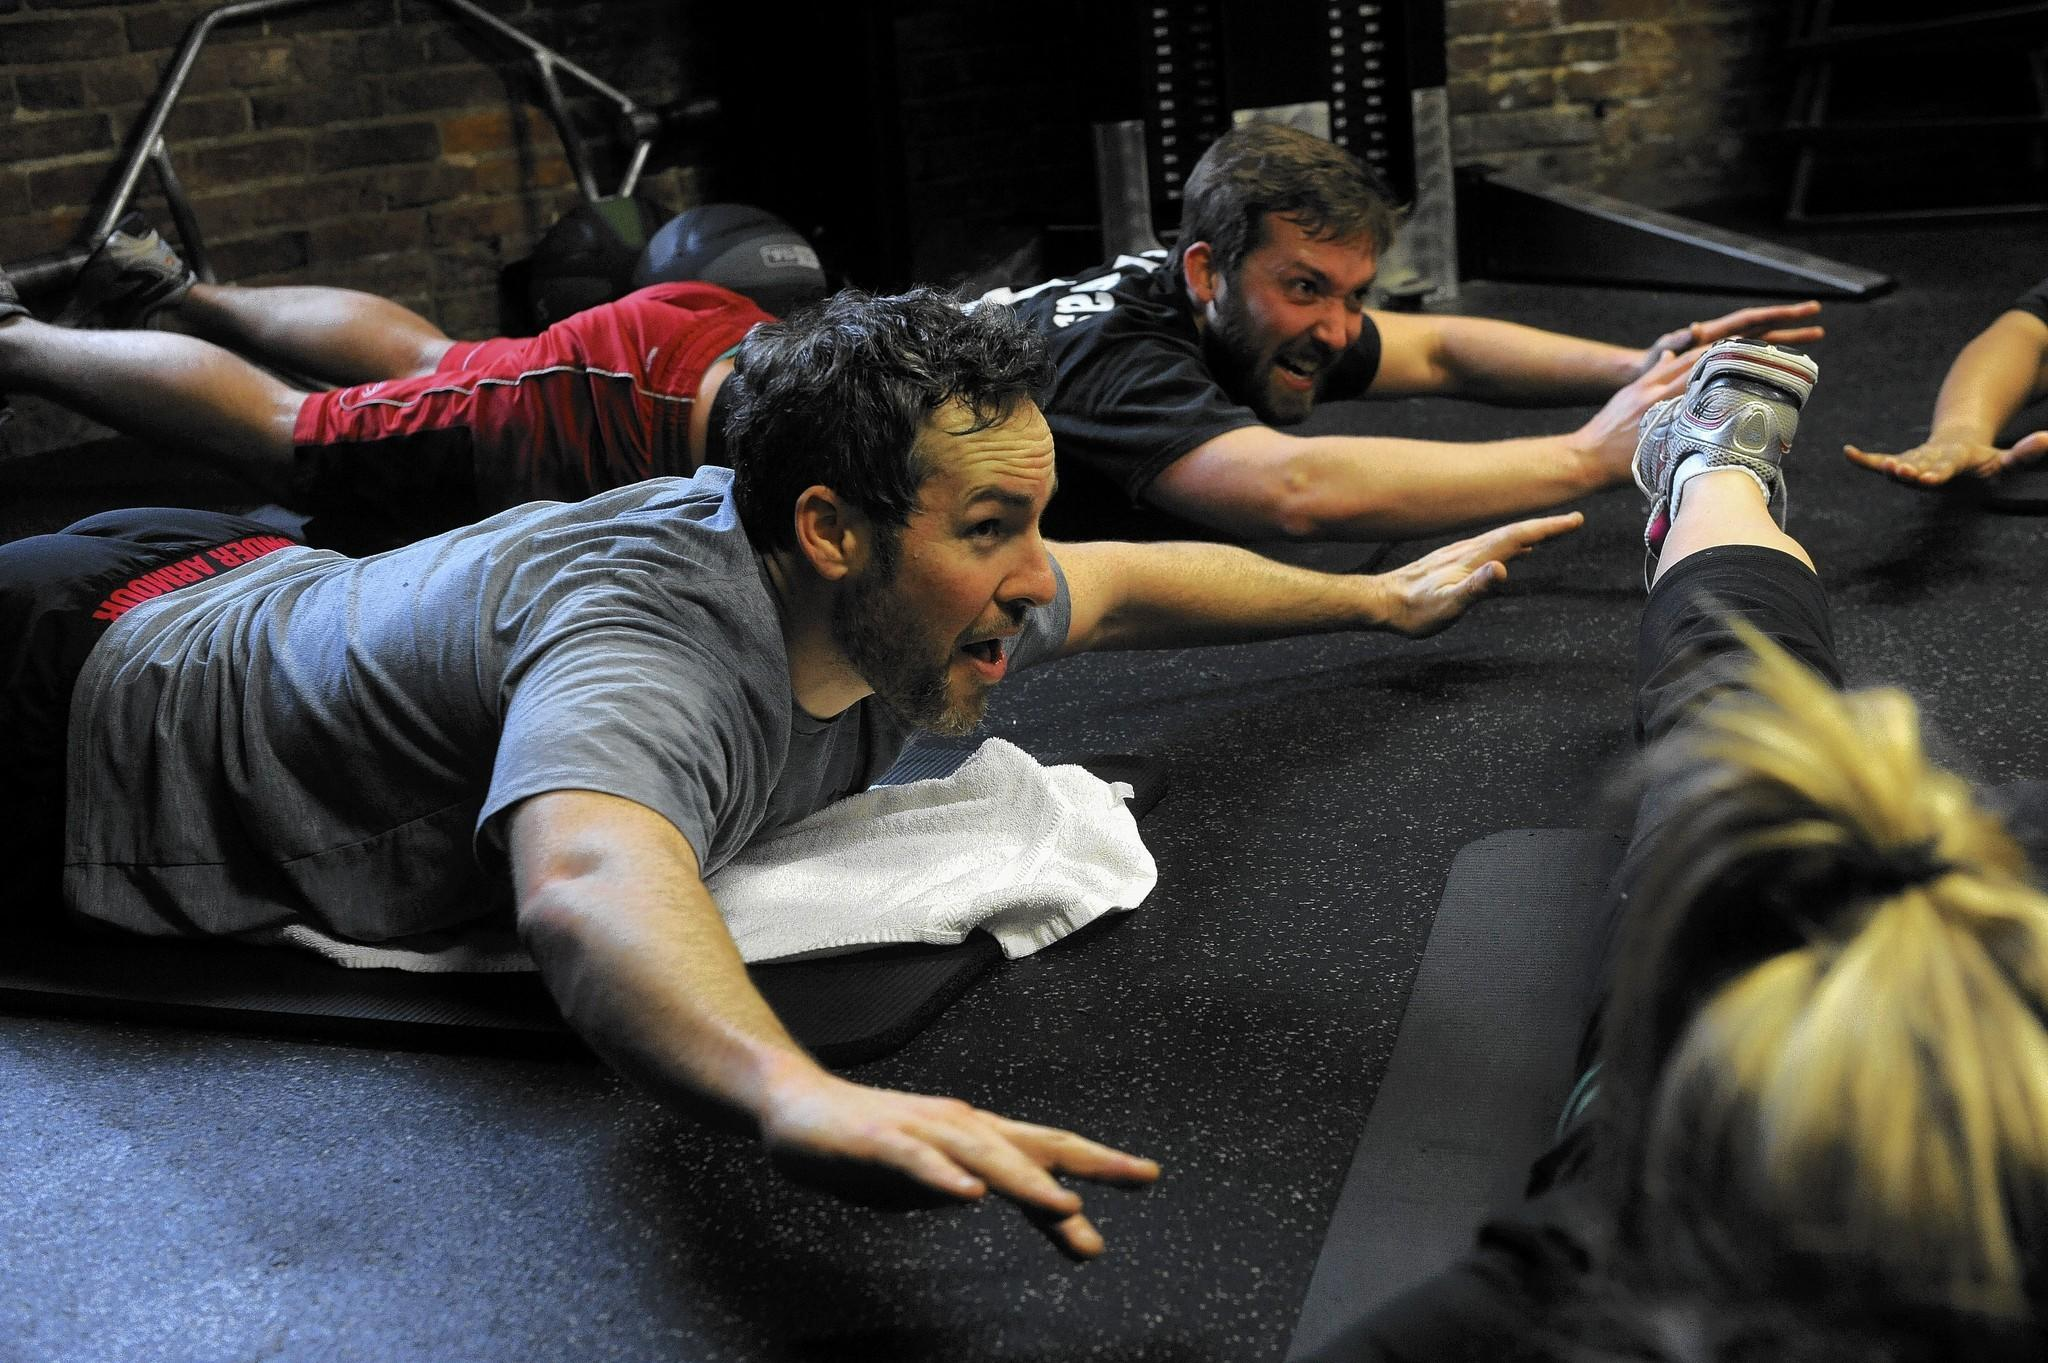 Jared Kelly (left), director of marketing, and Woody Heffern, marketing, Agora Inc. work their core with a Superman exercise. They join other employees to enjoy a midday workout at the company gym. This session, Agora Employee Fitness by FX Studios, is lead by Heather Hatfield, an FX personal trainer.